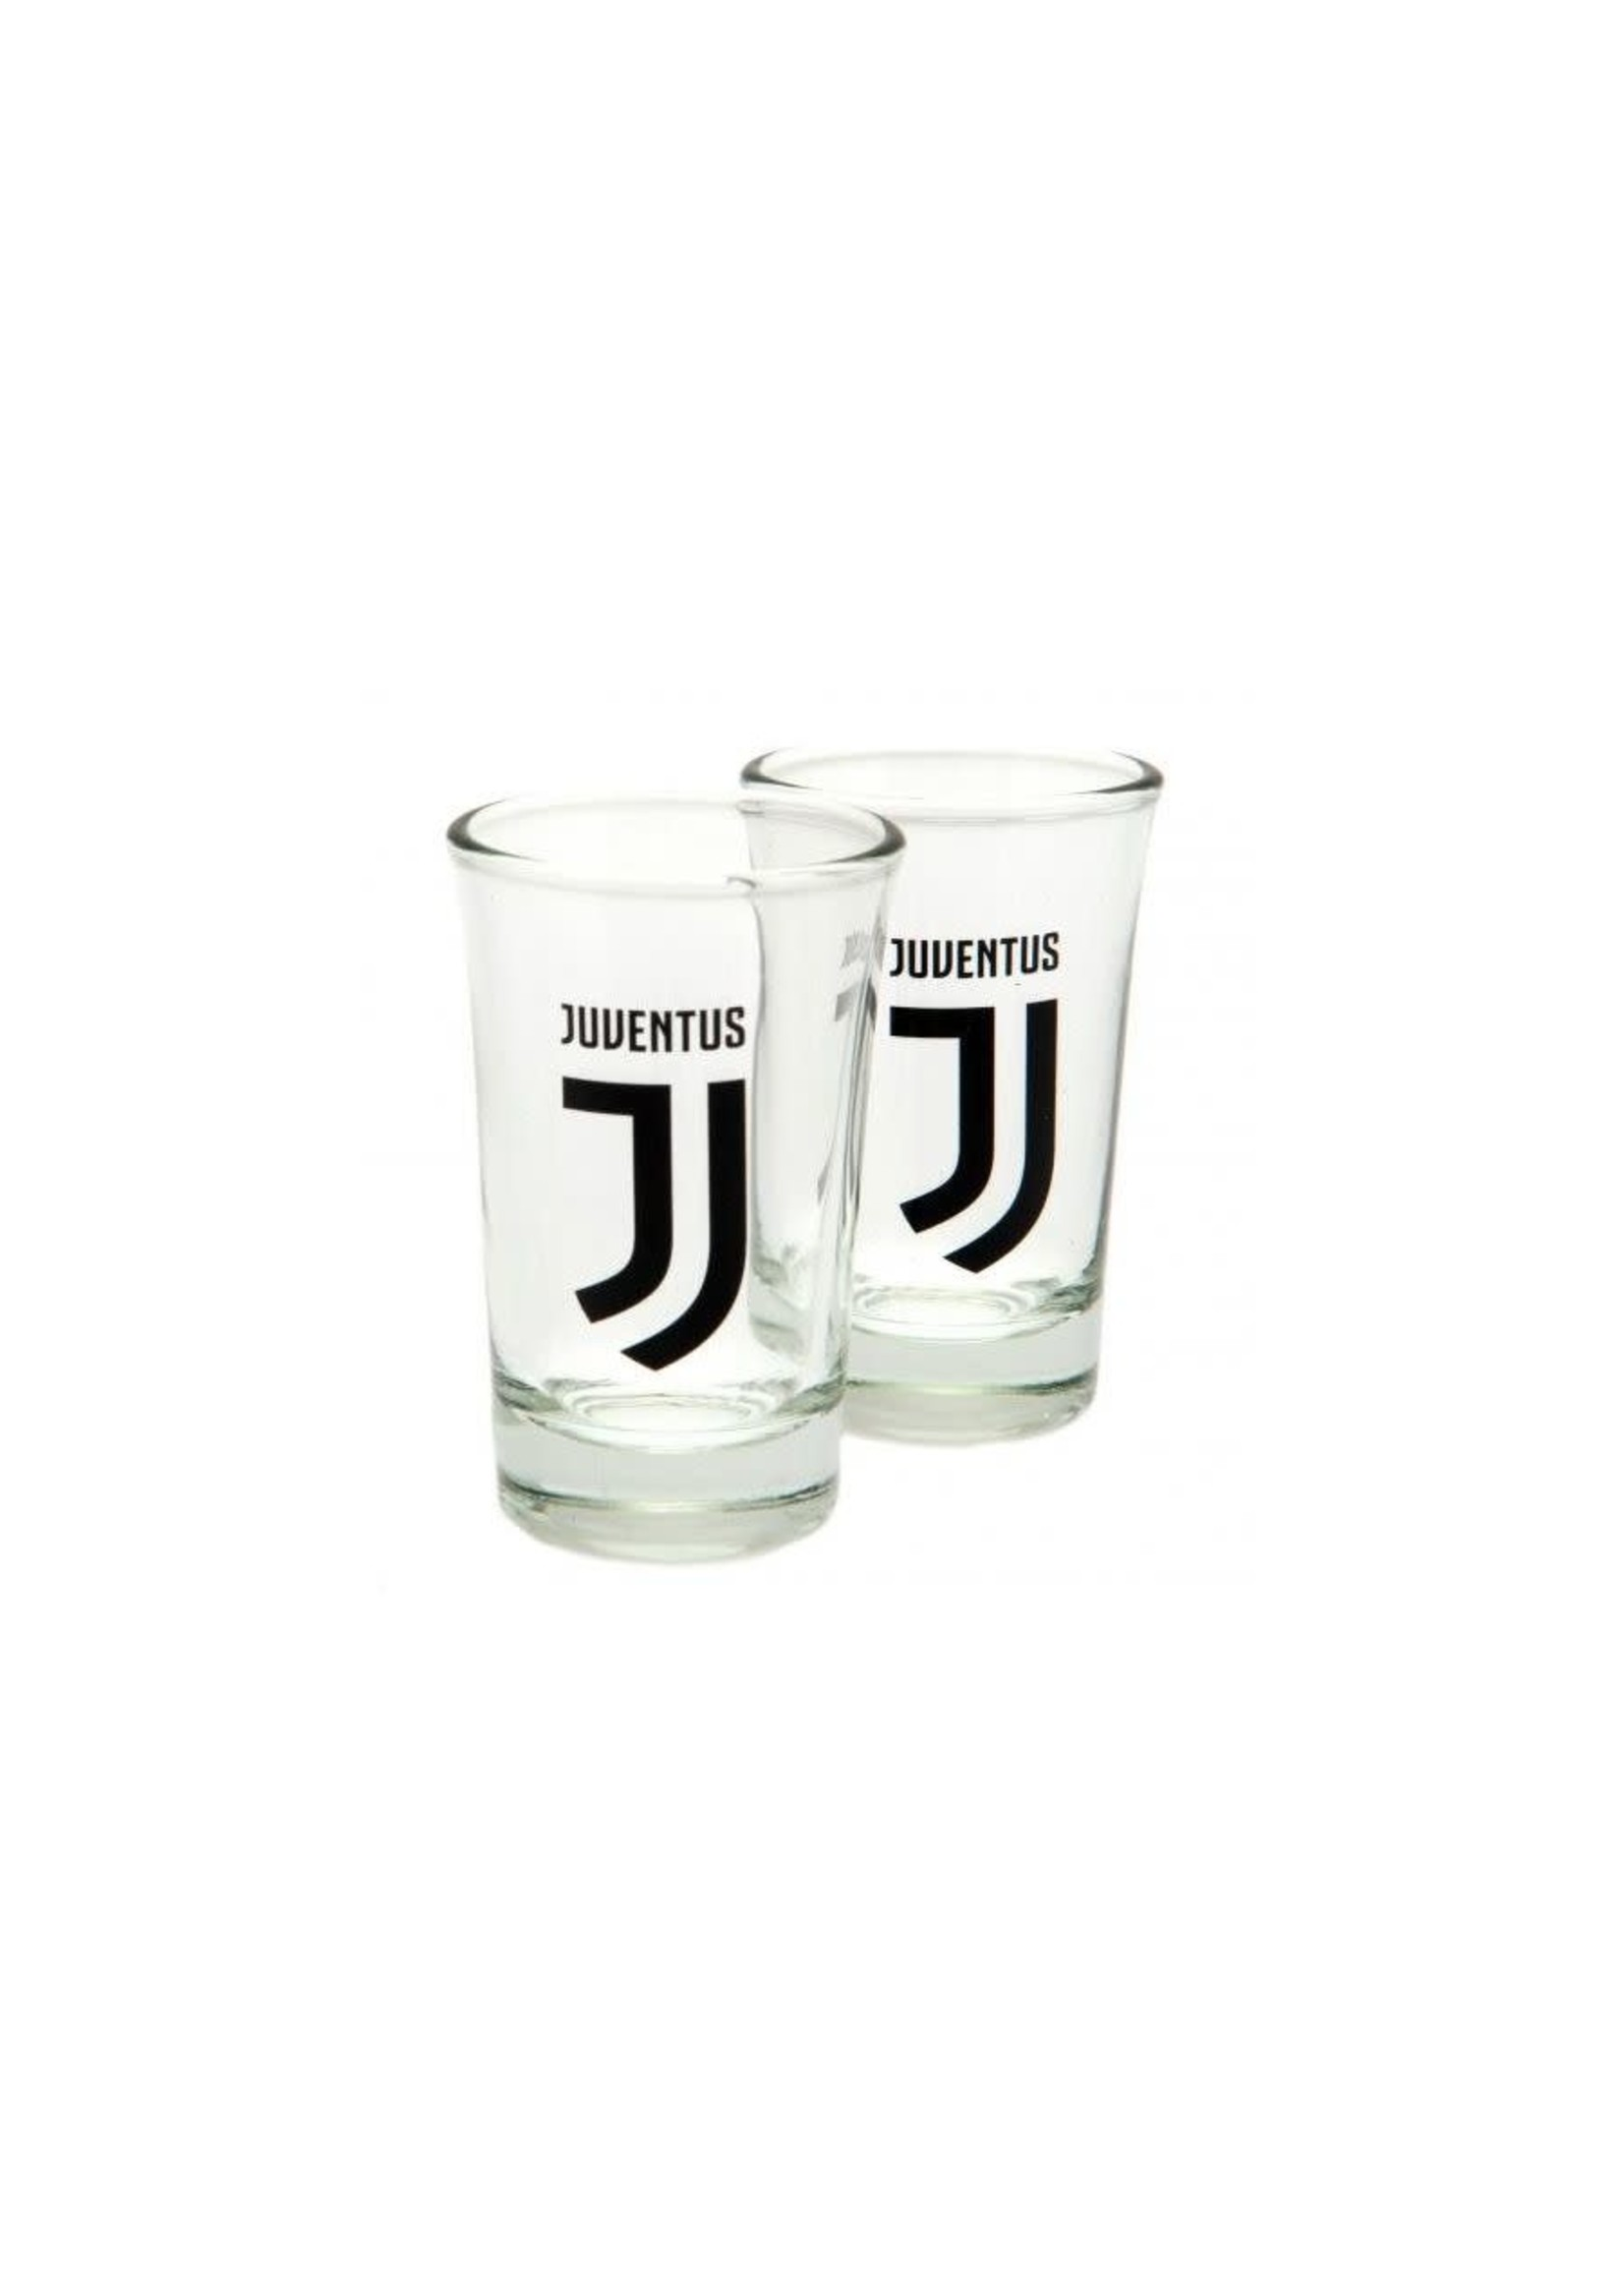 Juventus Shot Glasses - 2 pack